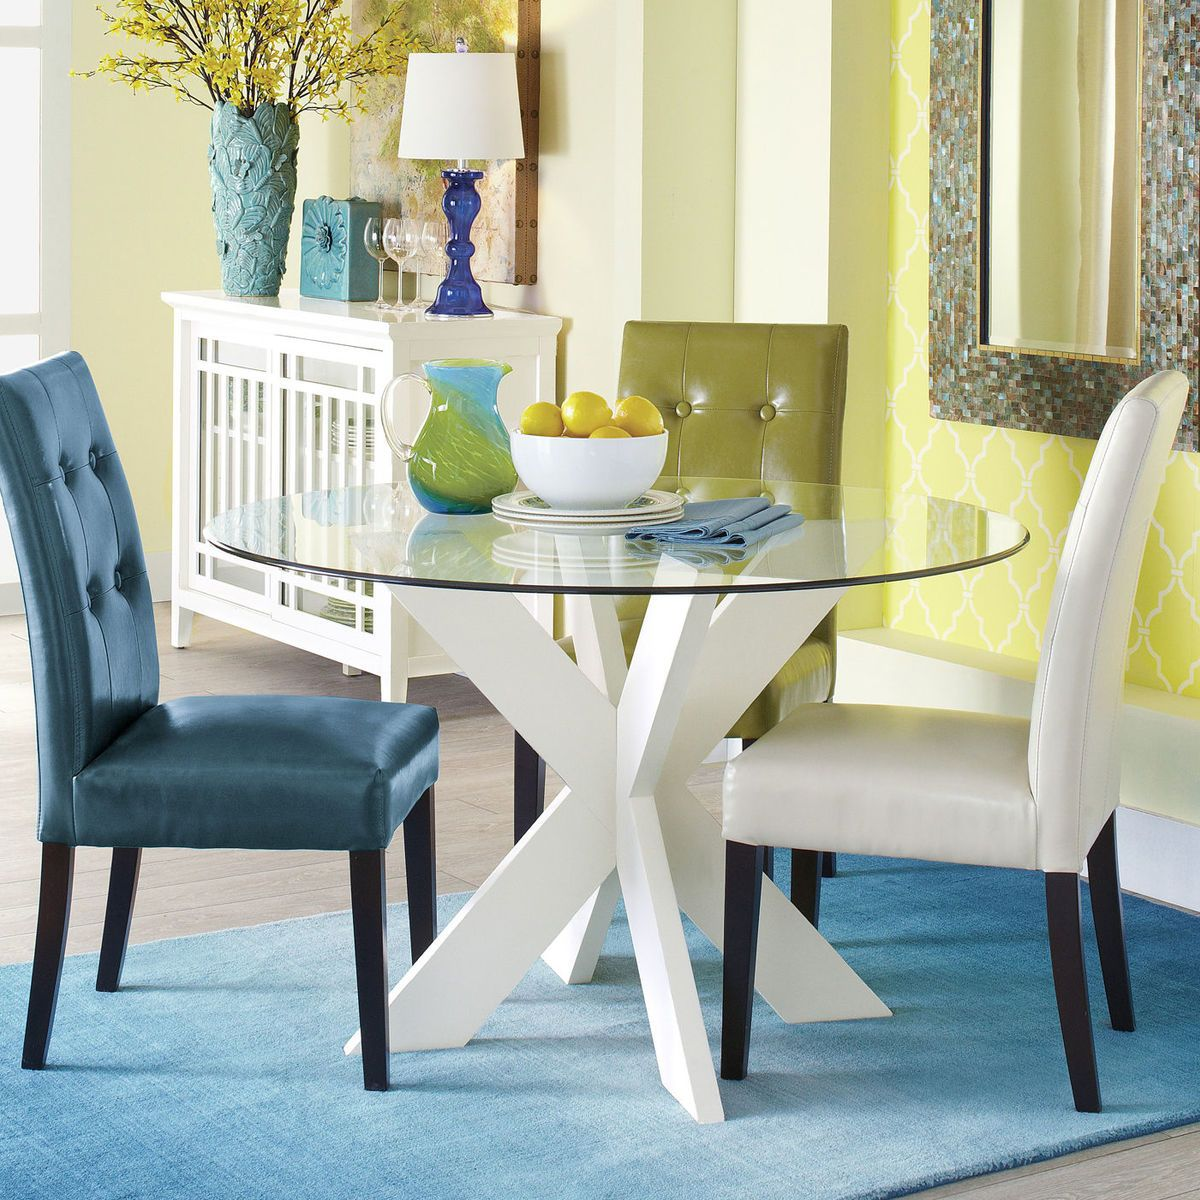 Pier One Kitchen Table Teal Dining Chair Chairs Masons And Pier 1 Imports